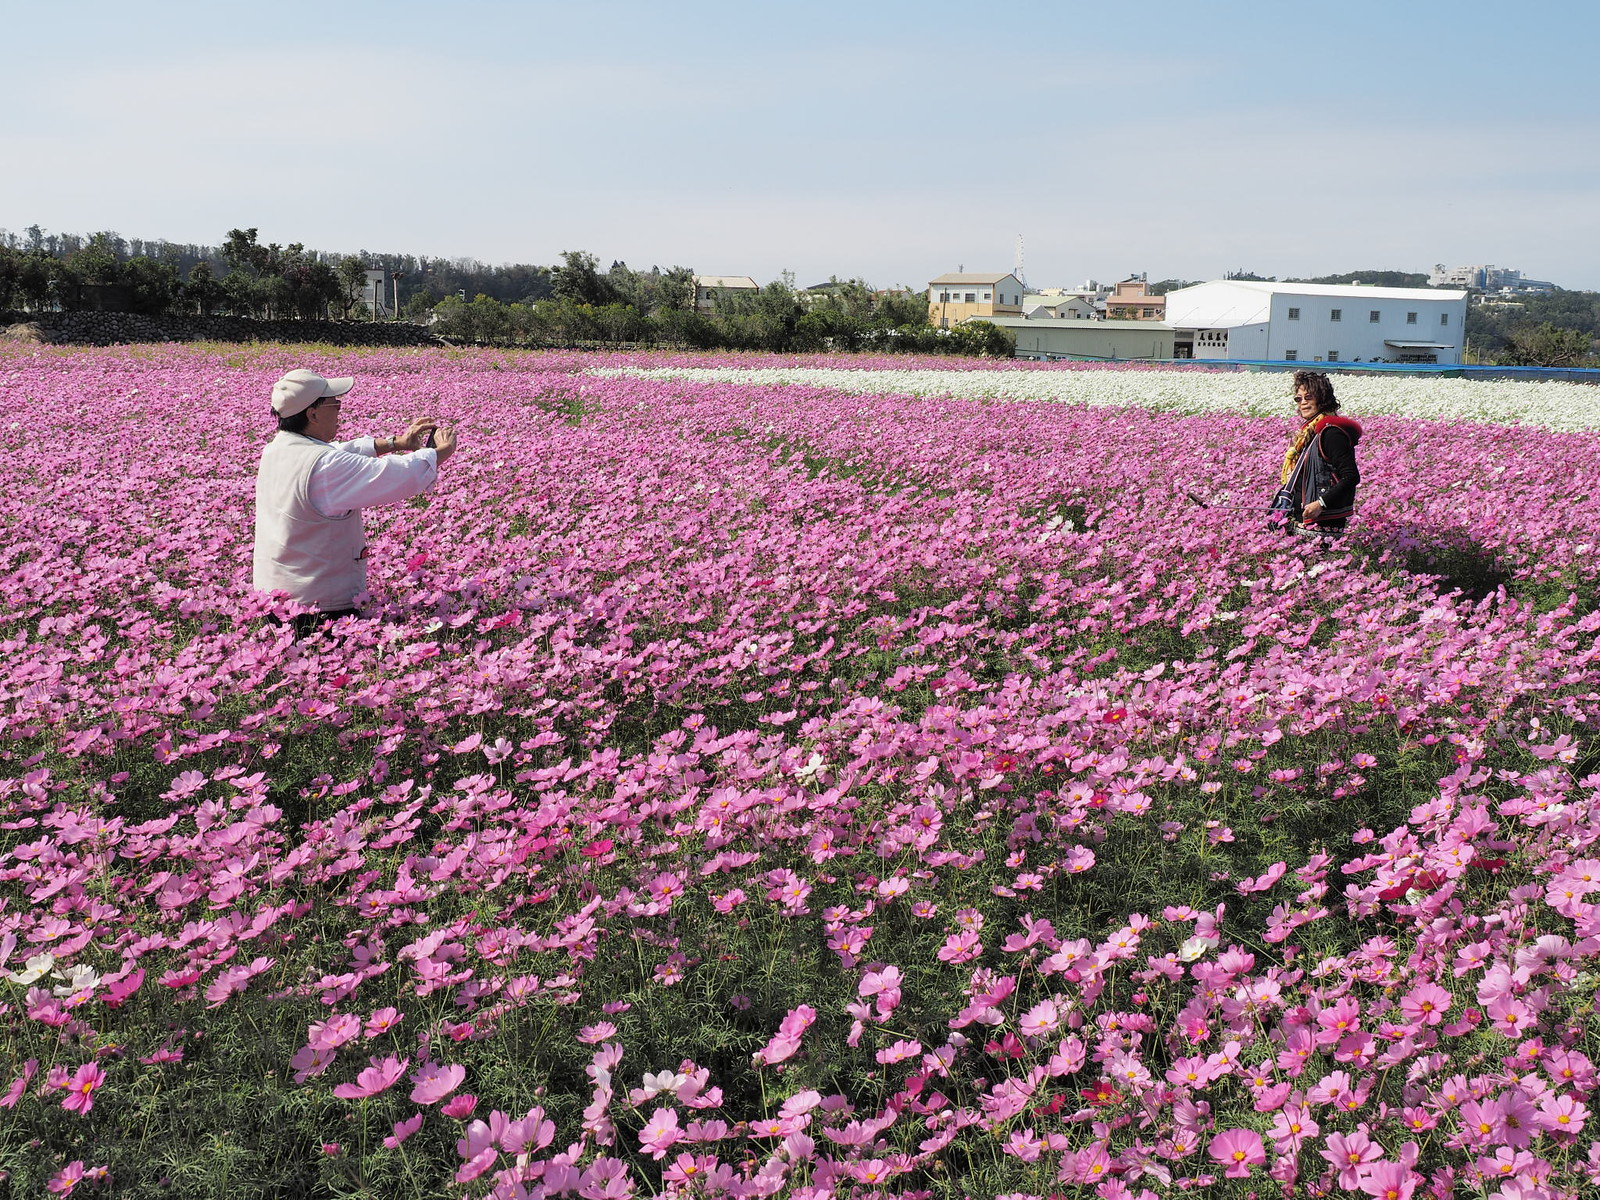 Tourists taking photos in the sea of flowers at Chungshe Flower Garden (中社觀光花市), Taichung, Taiwan.